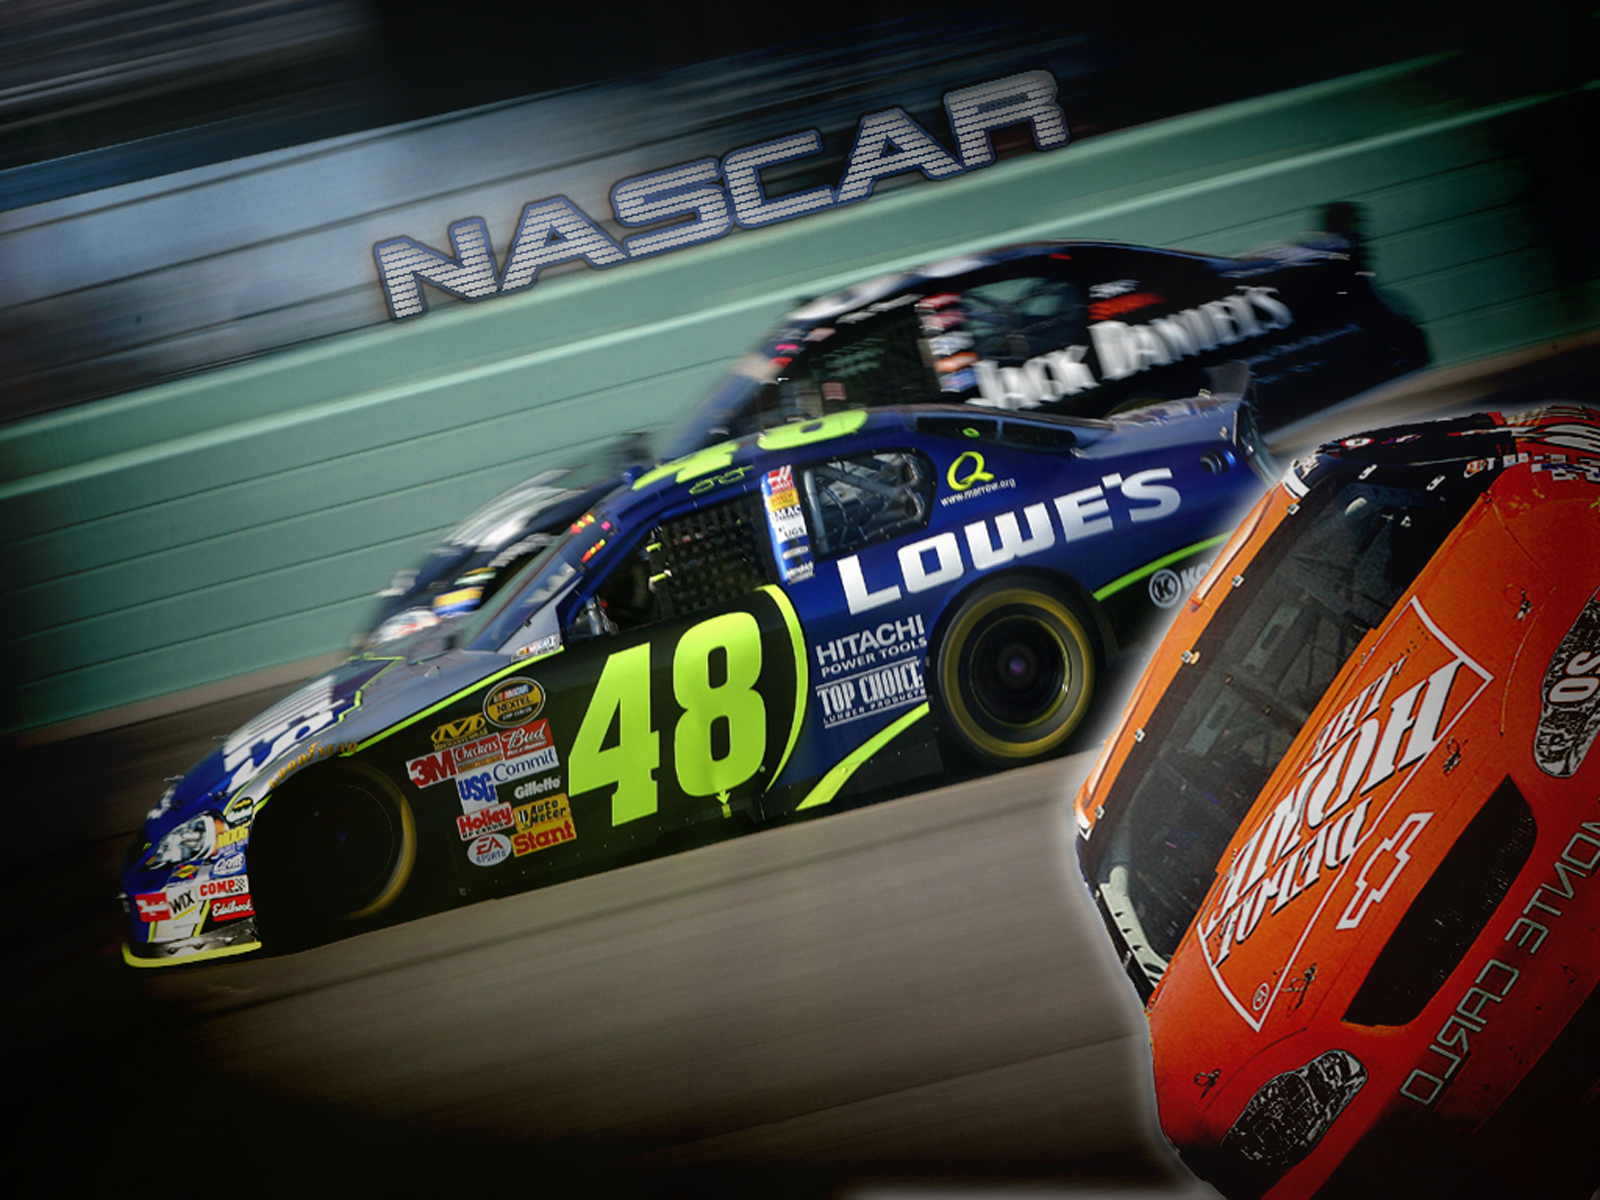 Nascar HD Wallpapers Auto Sports